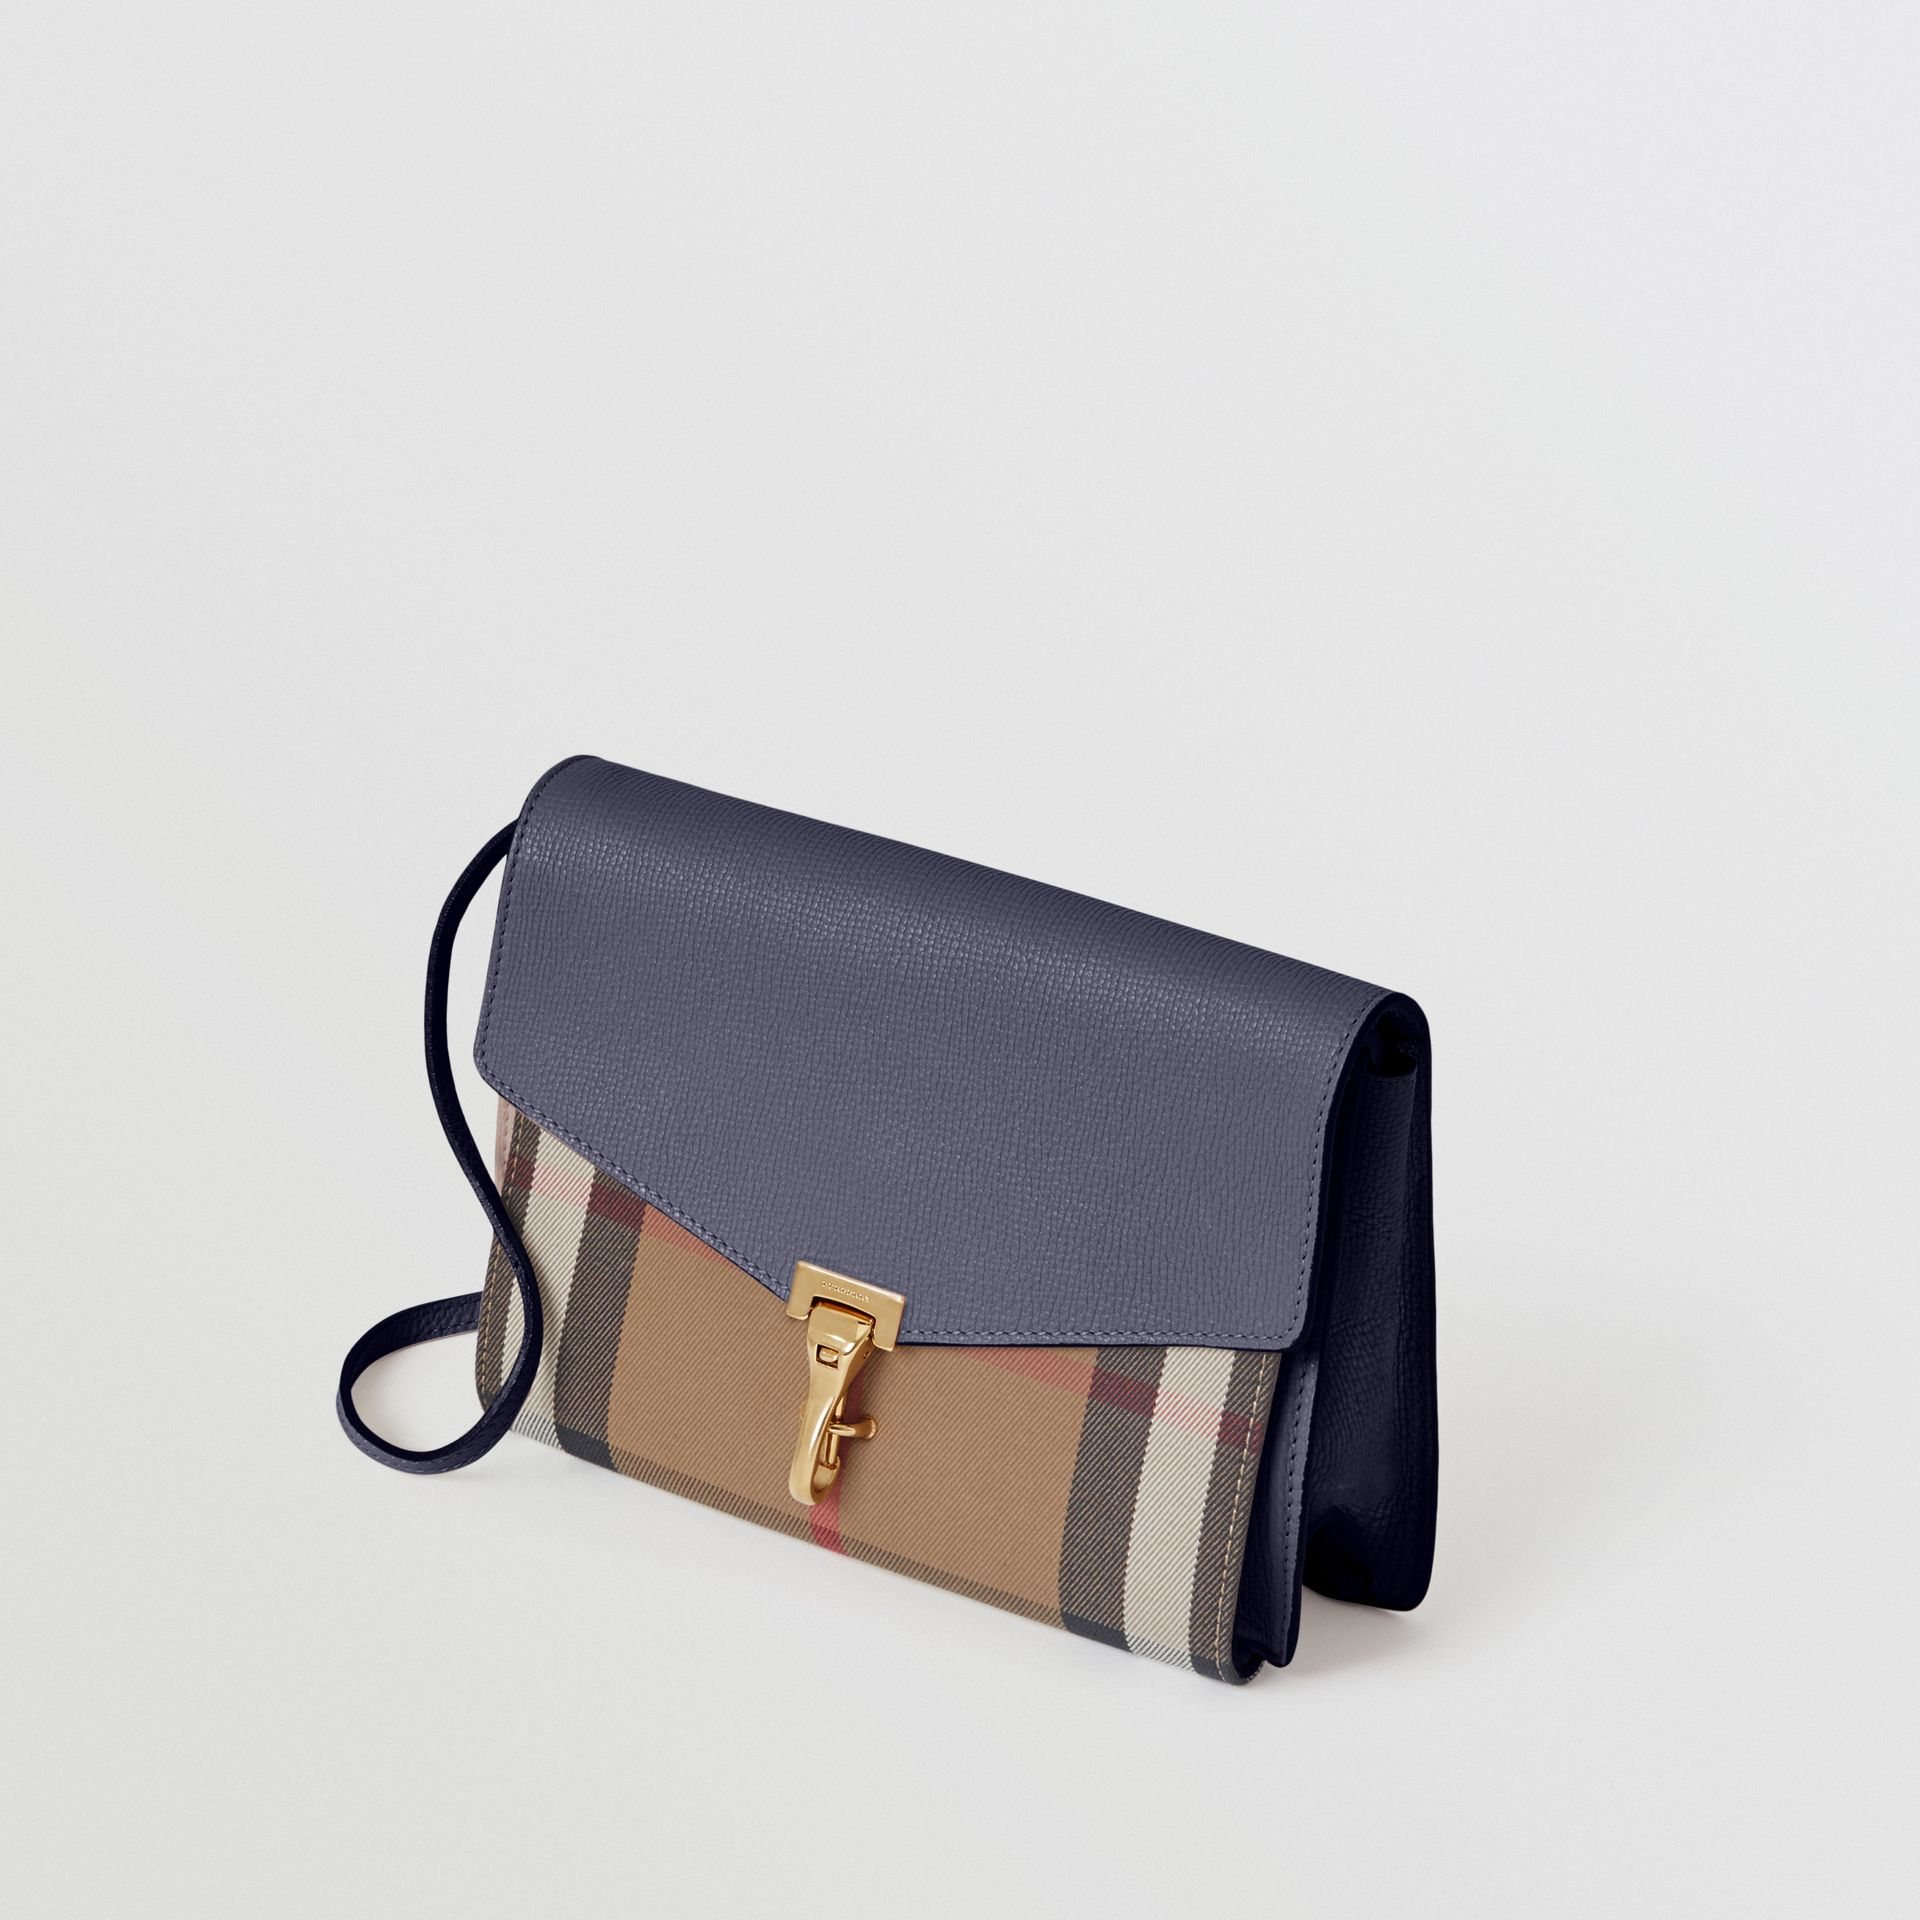 Small Leather and House Check Crossbody Bag in Ink Blue - Women | Burberry Hong Kong - gallery image 4